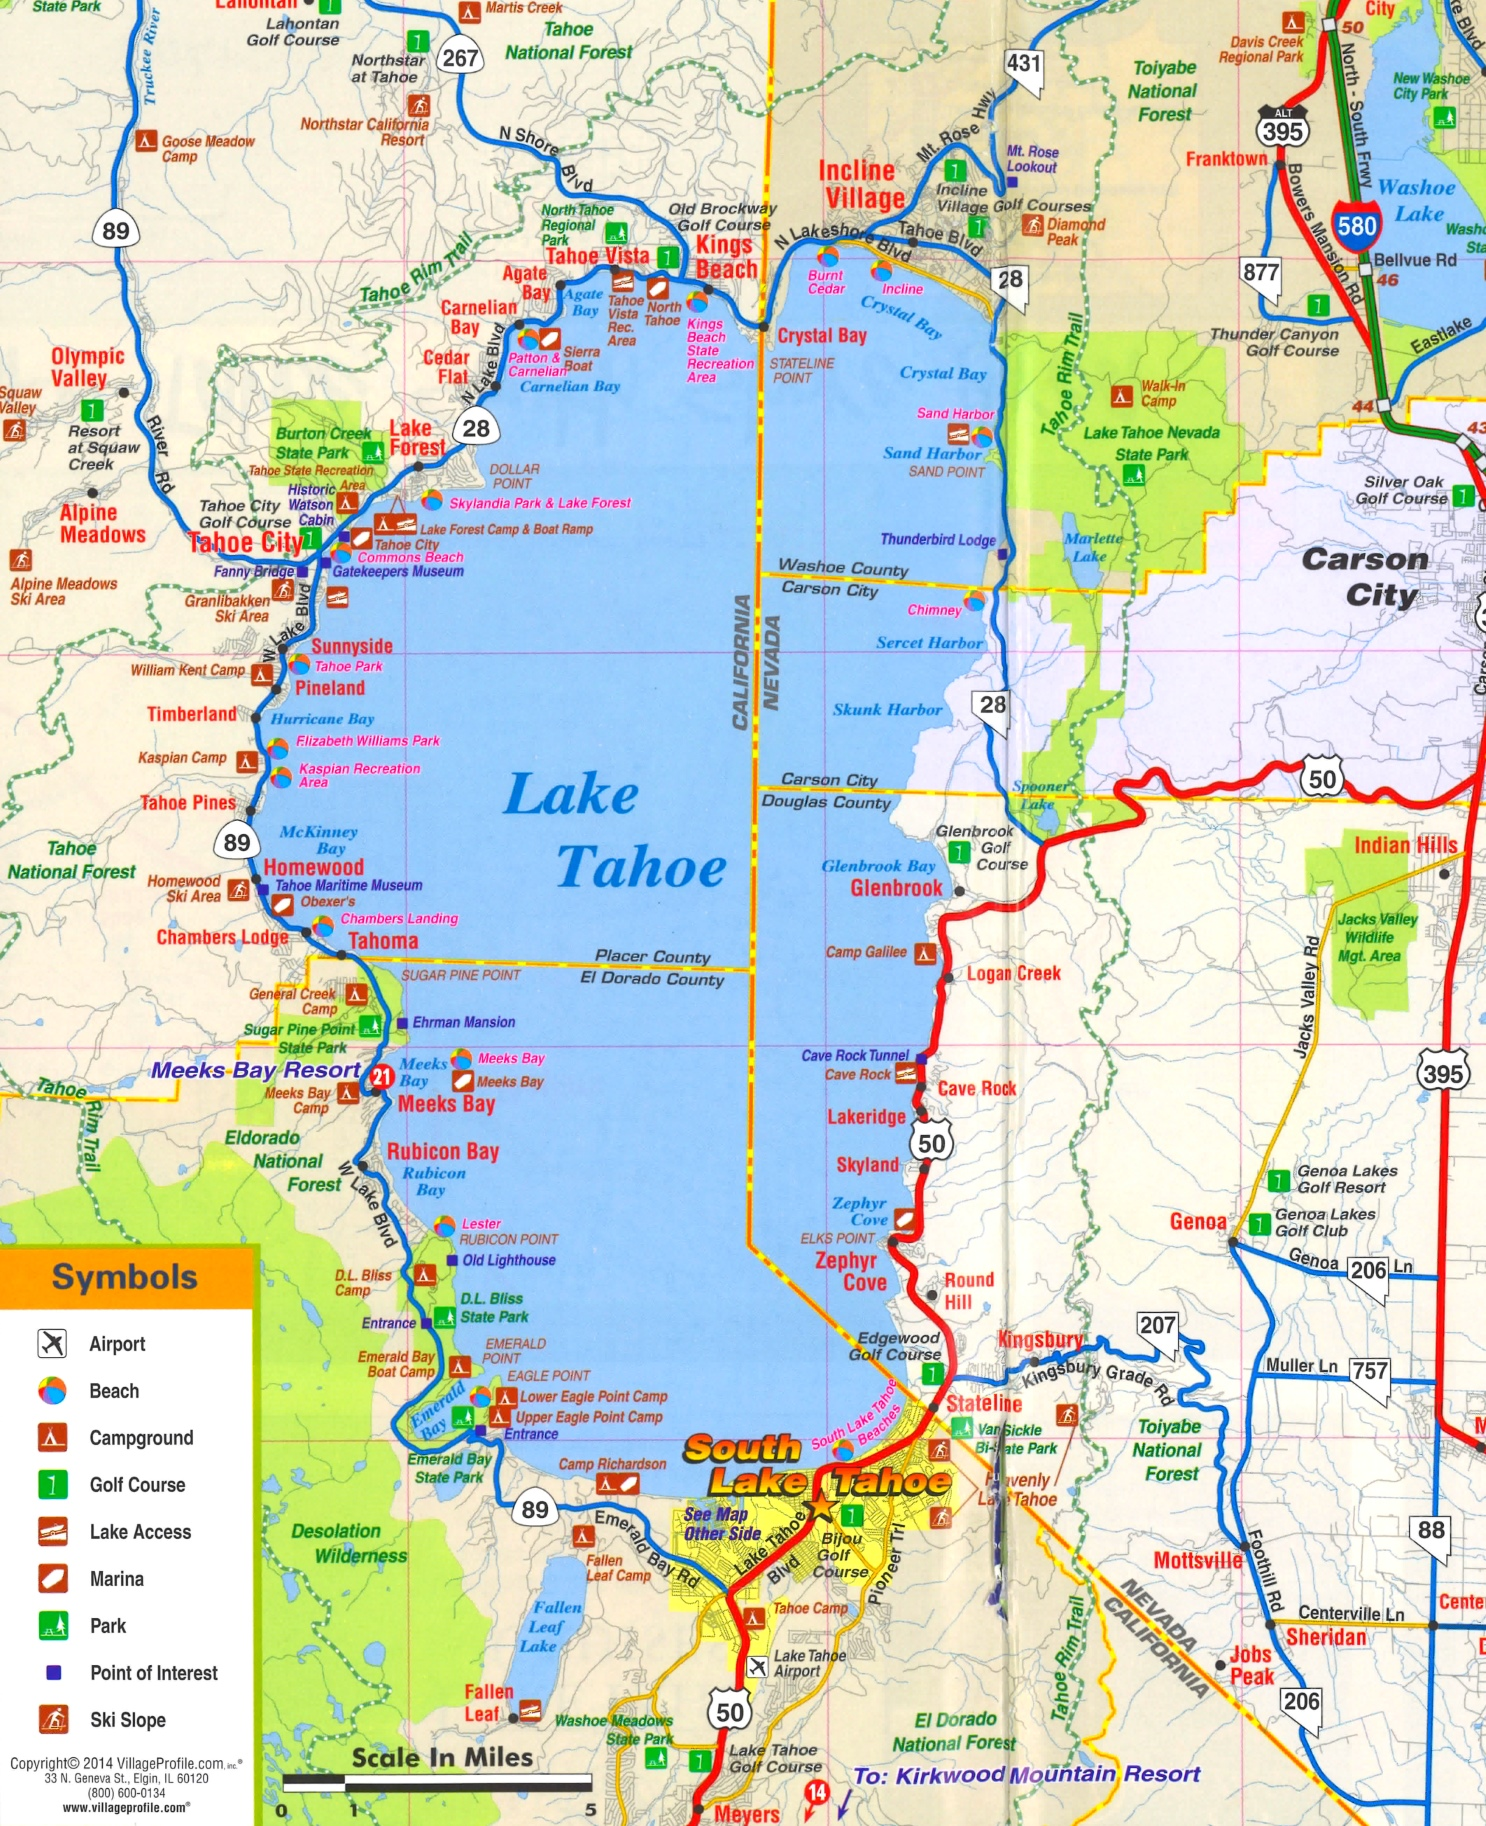 Lake Tahoe tourist attractions map on map of ferguson nc, map of north topsail island nc, map of orange co nc, map of oakland nc, map of thomasville nc, map of kitty hawk nc, map of melbourne nc, map of jackson tn, map of spartanburg nc, map of charlottesville nc, map of otto nc, map of gatesville nc, map of pisgah nc, map of ogden nc, map of porters neck nc, map of hog island nc, map of onslow county nc, map of moyock nc, map of rocky mount nc, map of sneads ferry nc,